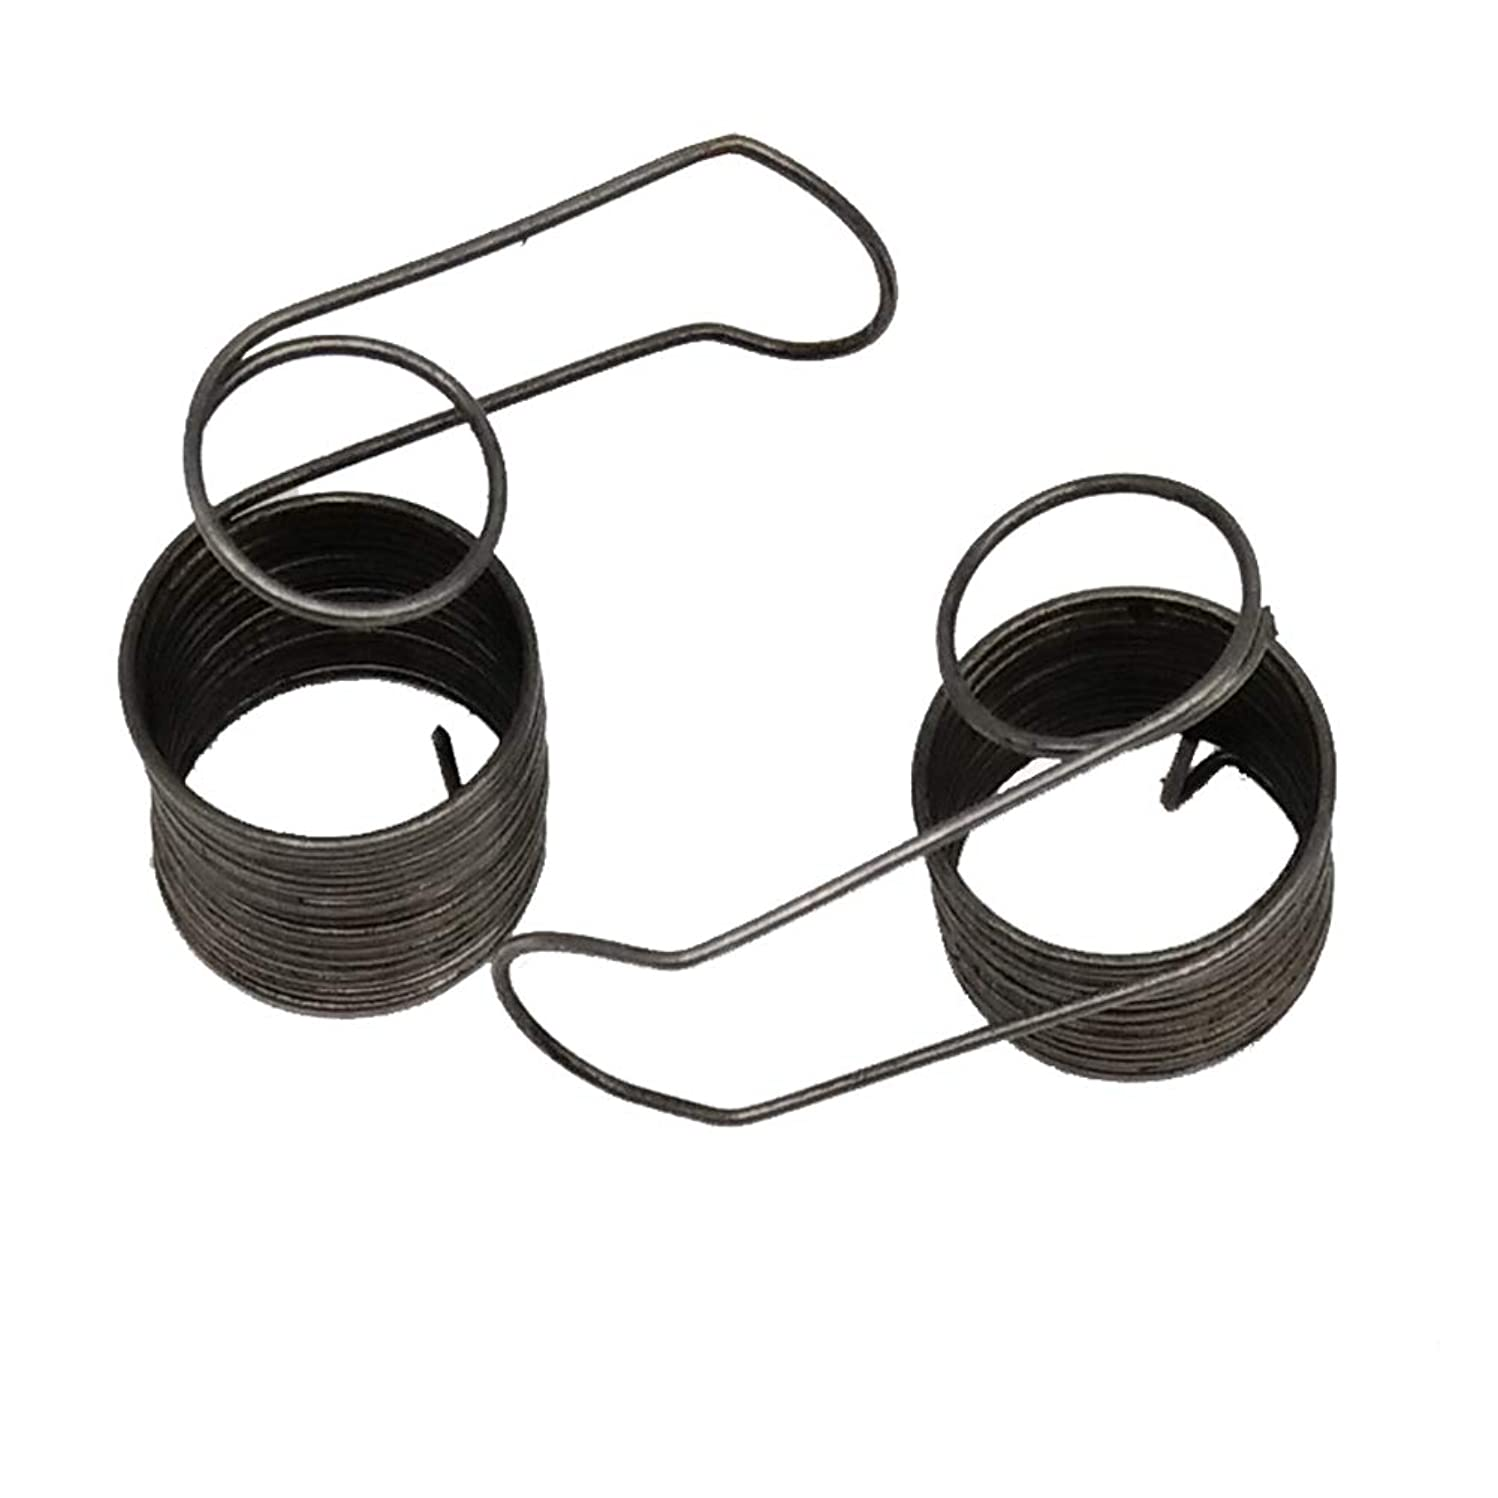 HONEYSEW 2PCS Tension Check Spring Pull UP #66774 for Singer Featherweight 201,221,222,223,237